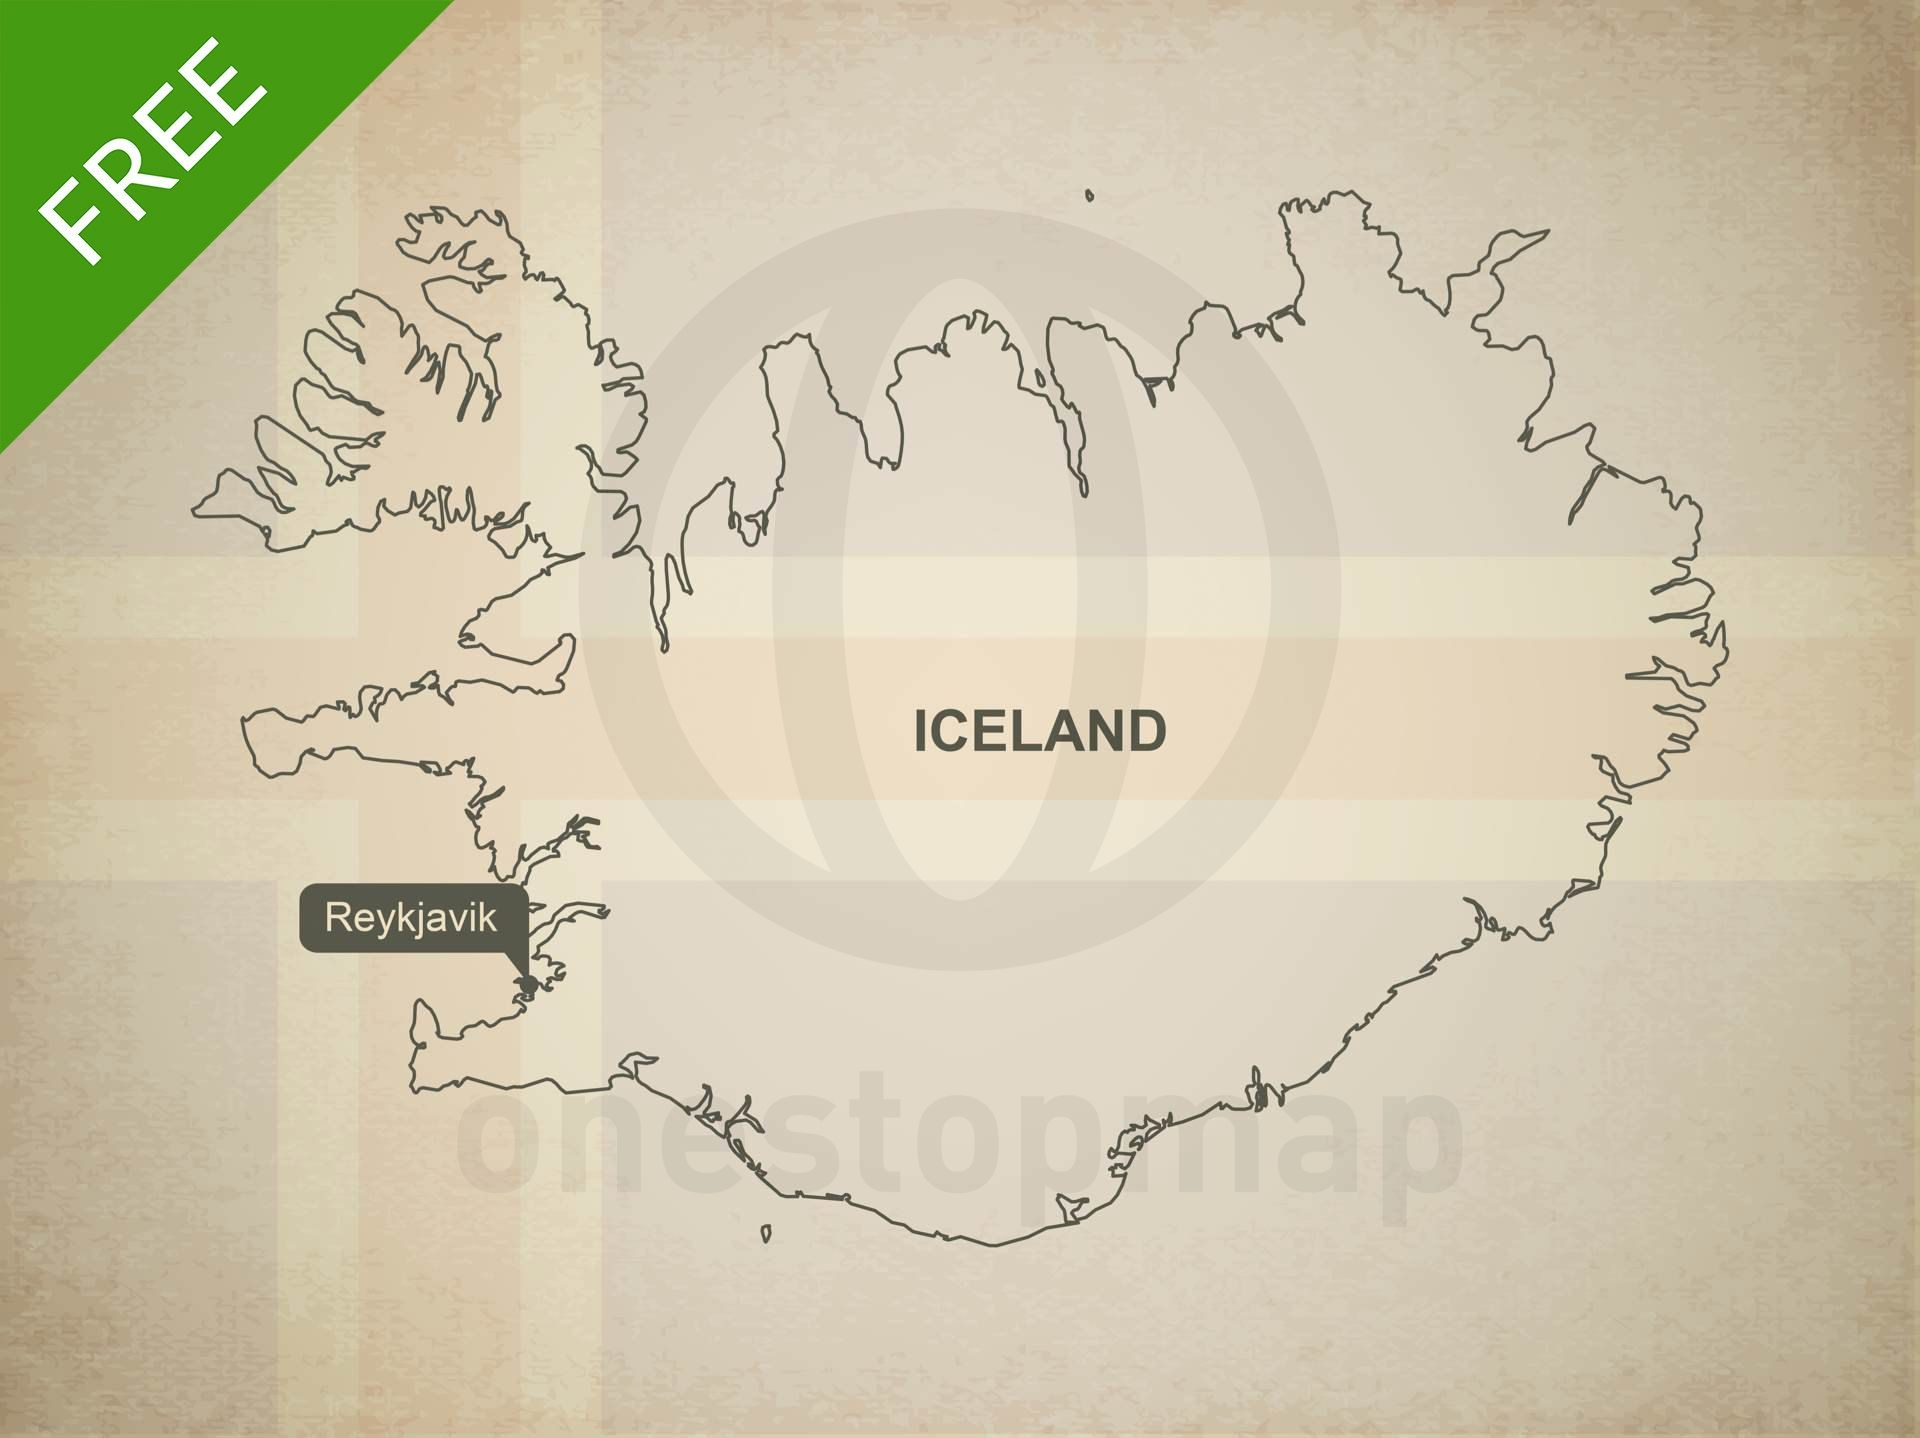 free vector map of iceland outline